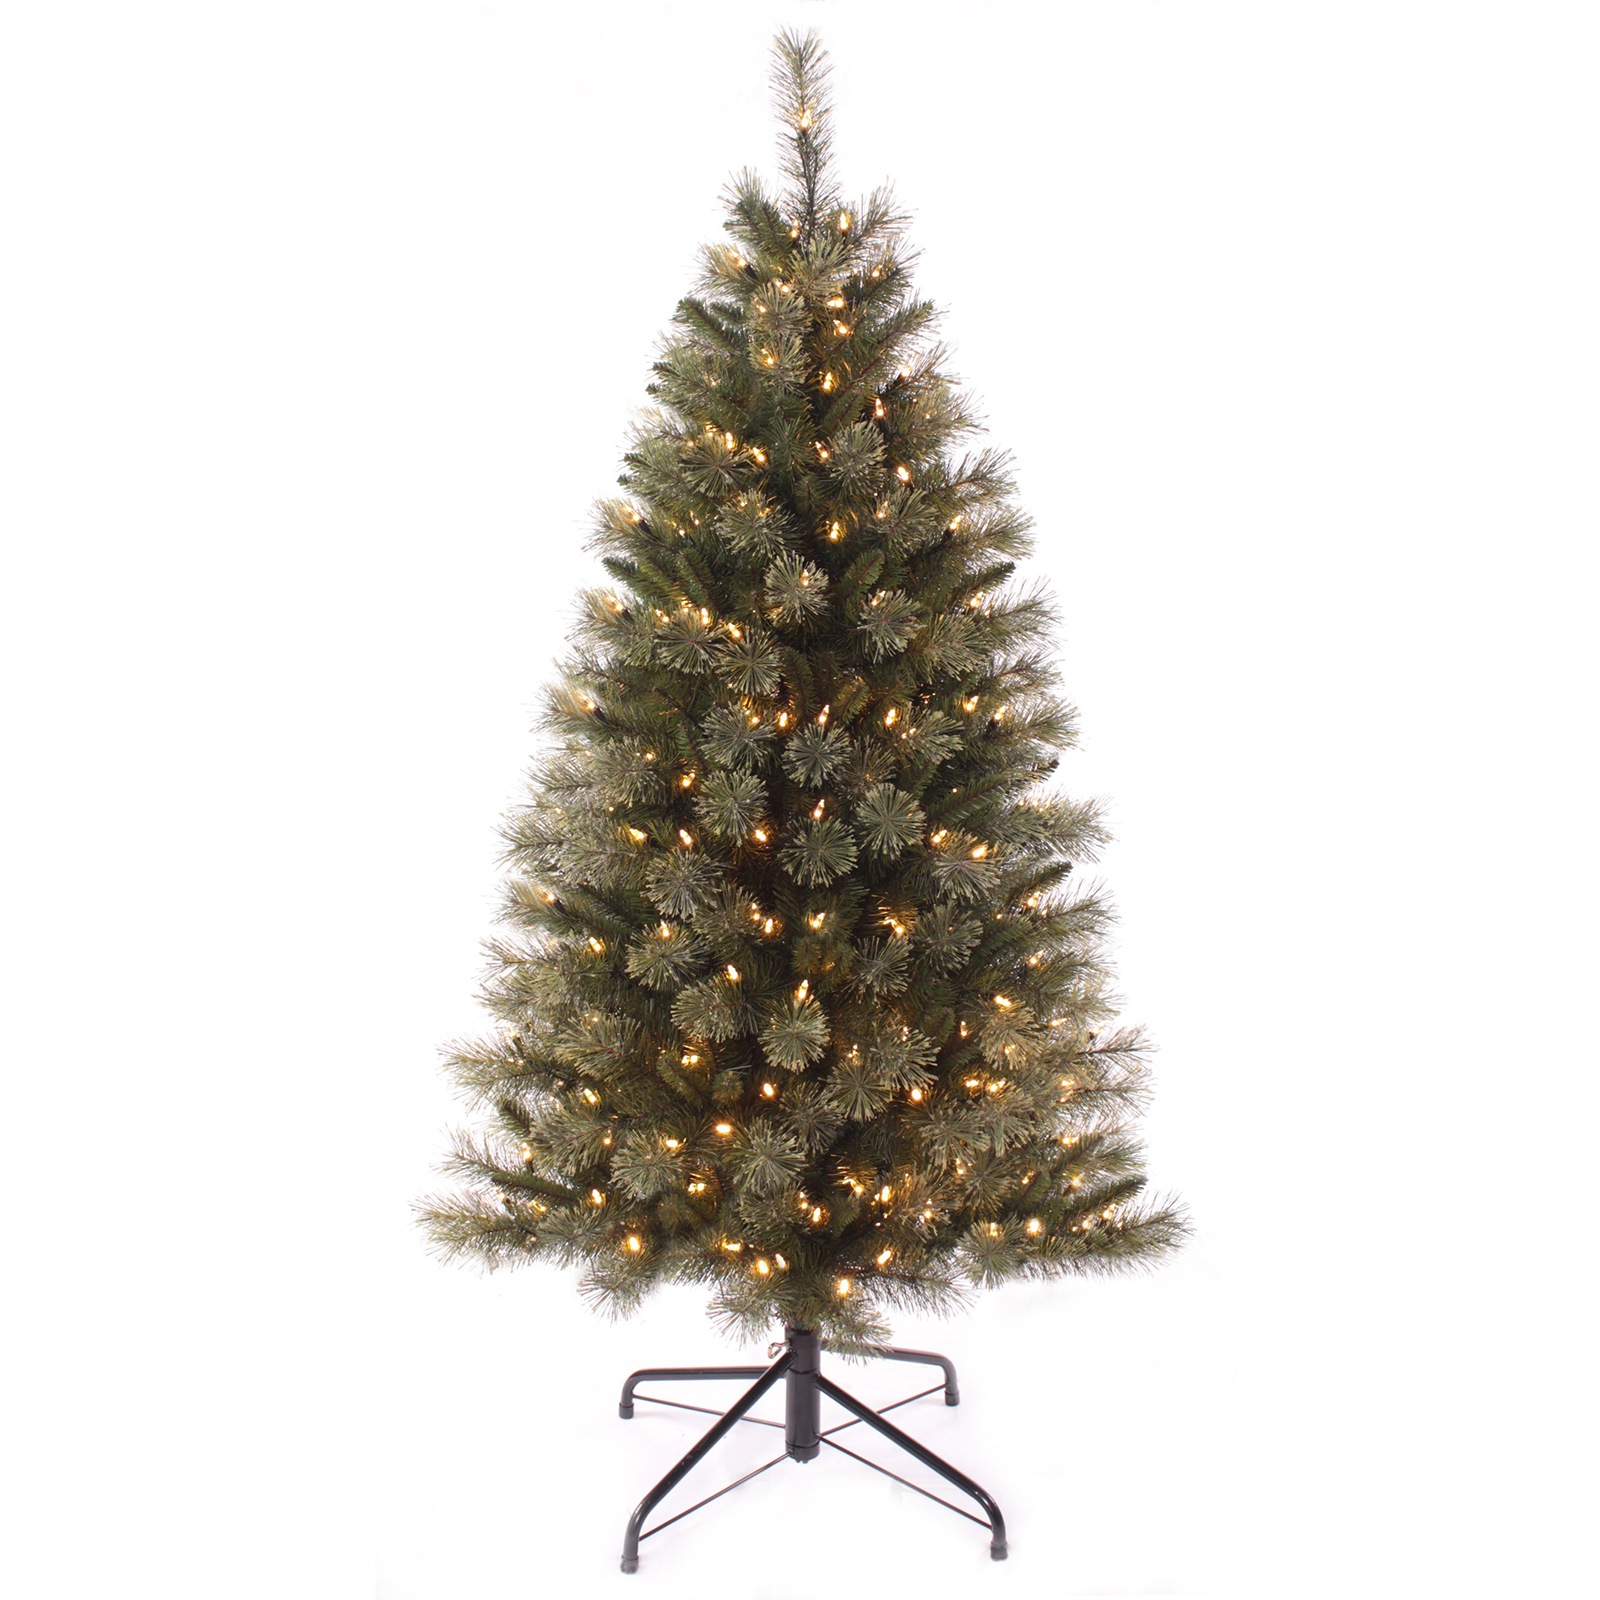 5ft pre lit christmas tree with warm white led lights artificial xmas decoration ebay. Black Bedroom Furniture Sets. Home Design Ideas